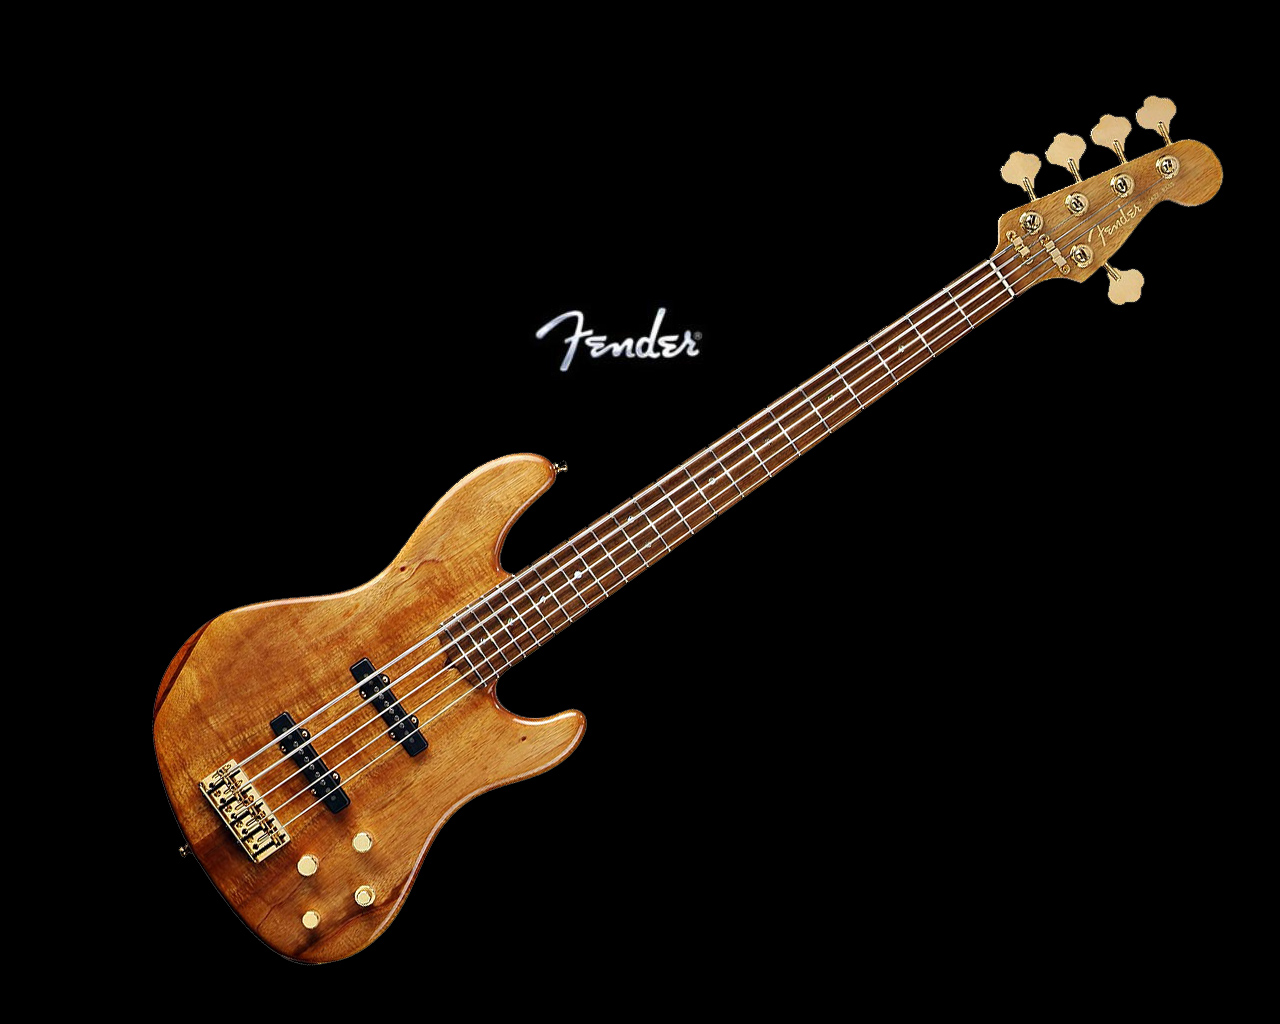 Fender Victor Bailey Jazz Bass V Music Picture HD ...